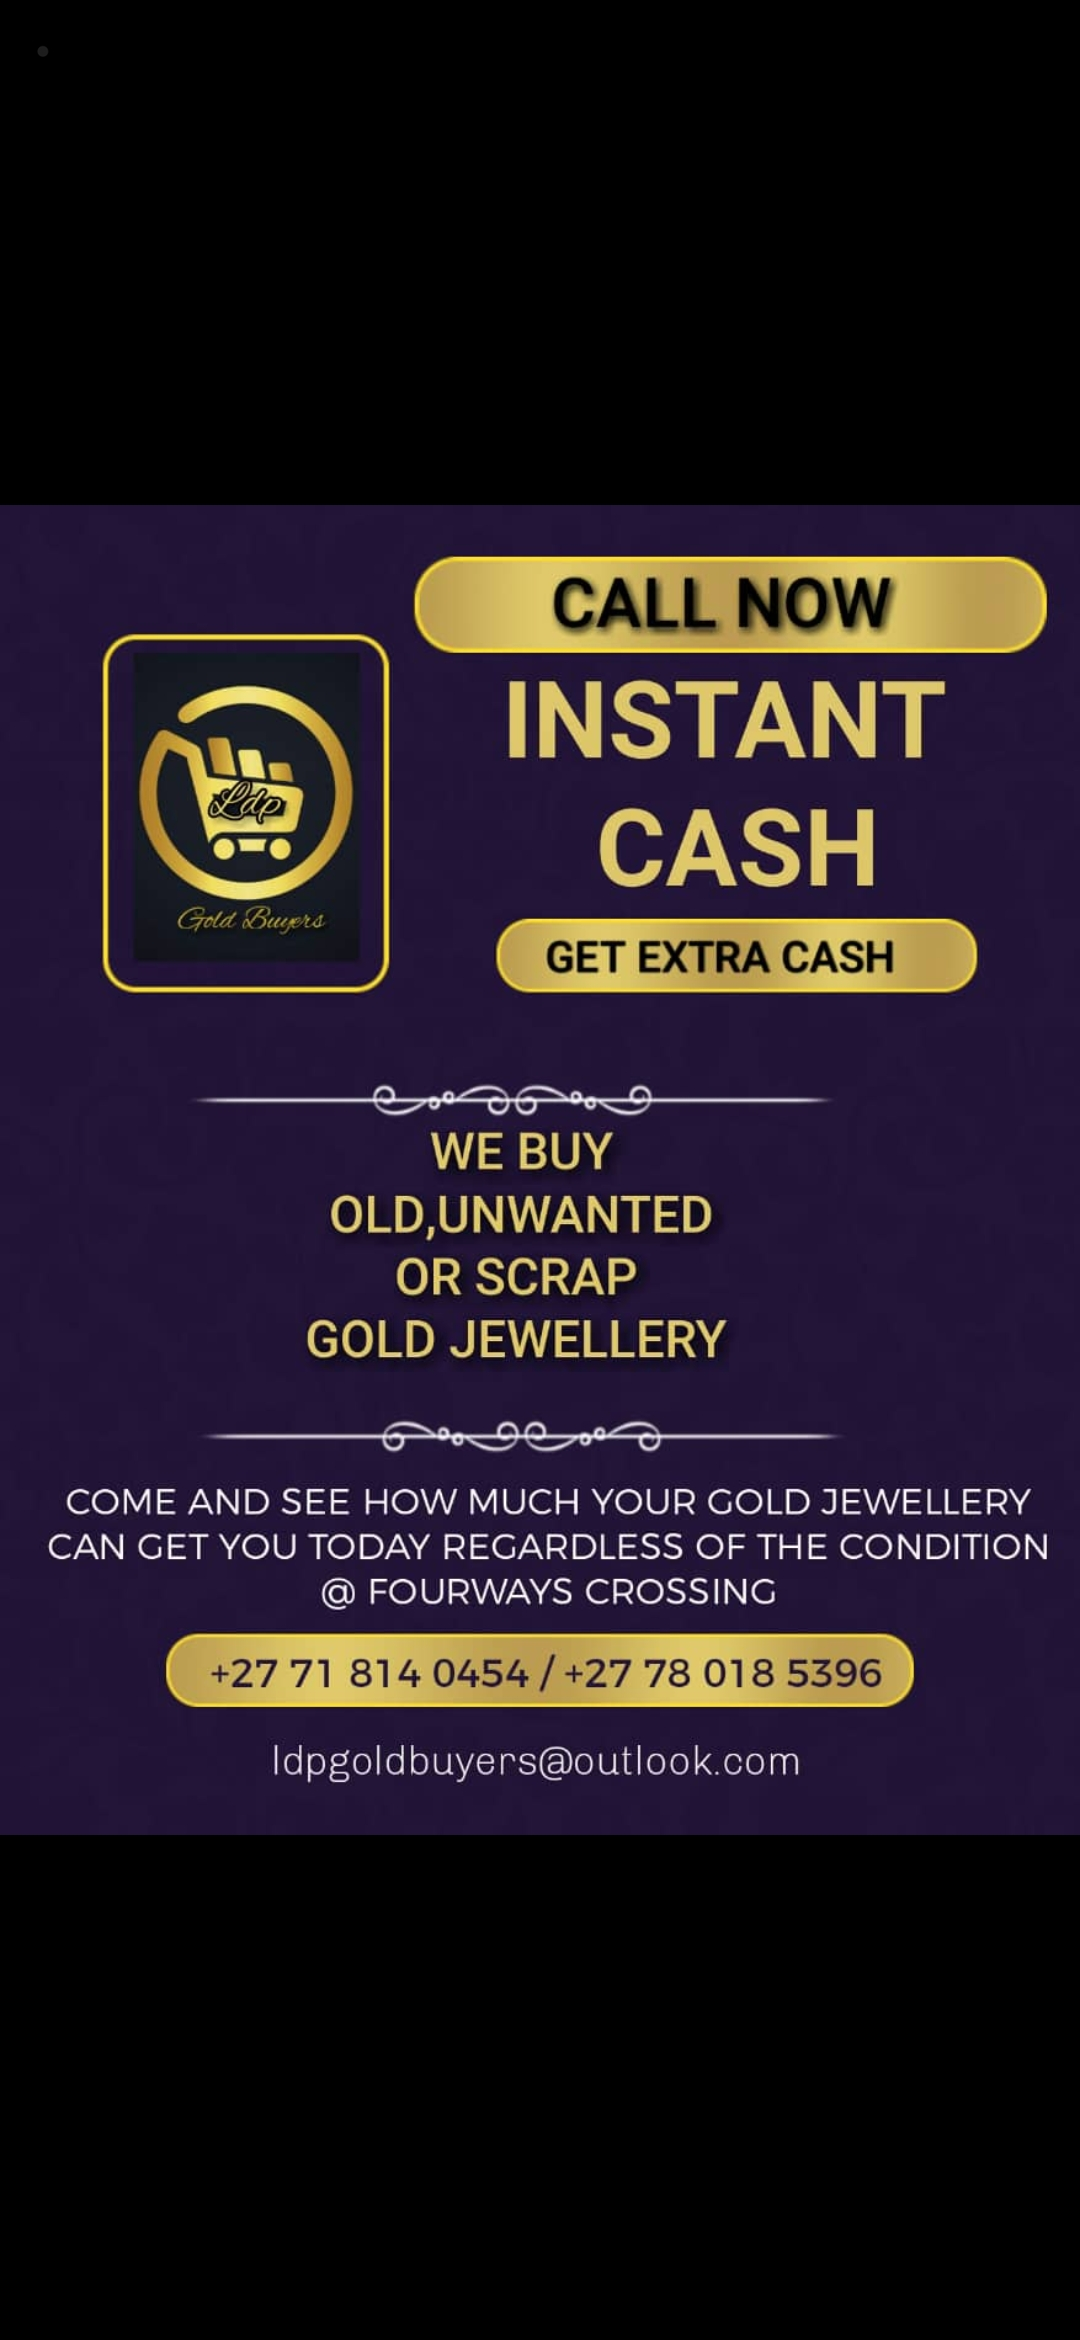 For your old jewelry LDP Gold Buyers (Infront of Ackermans FOURWAYS CROSSING) )